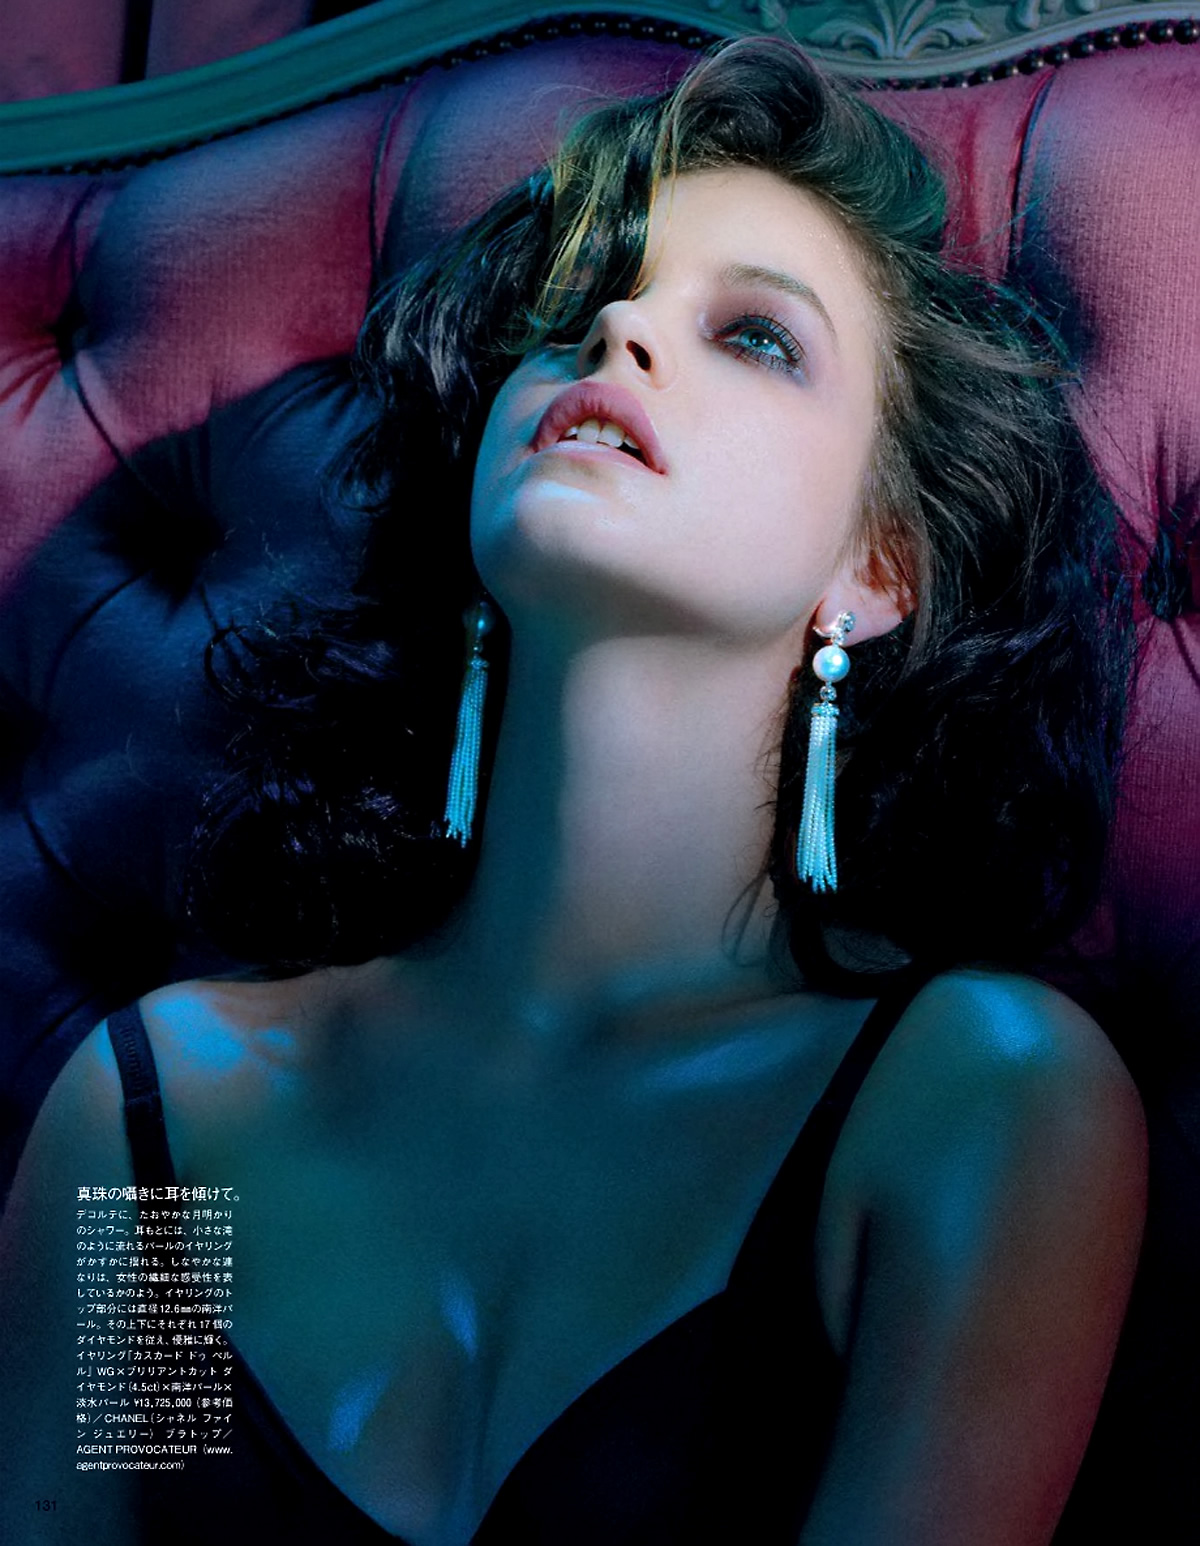 Barbara Palvin By Miles Aldridge For Vogue Japan June 2014